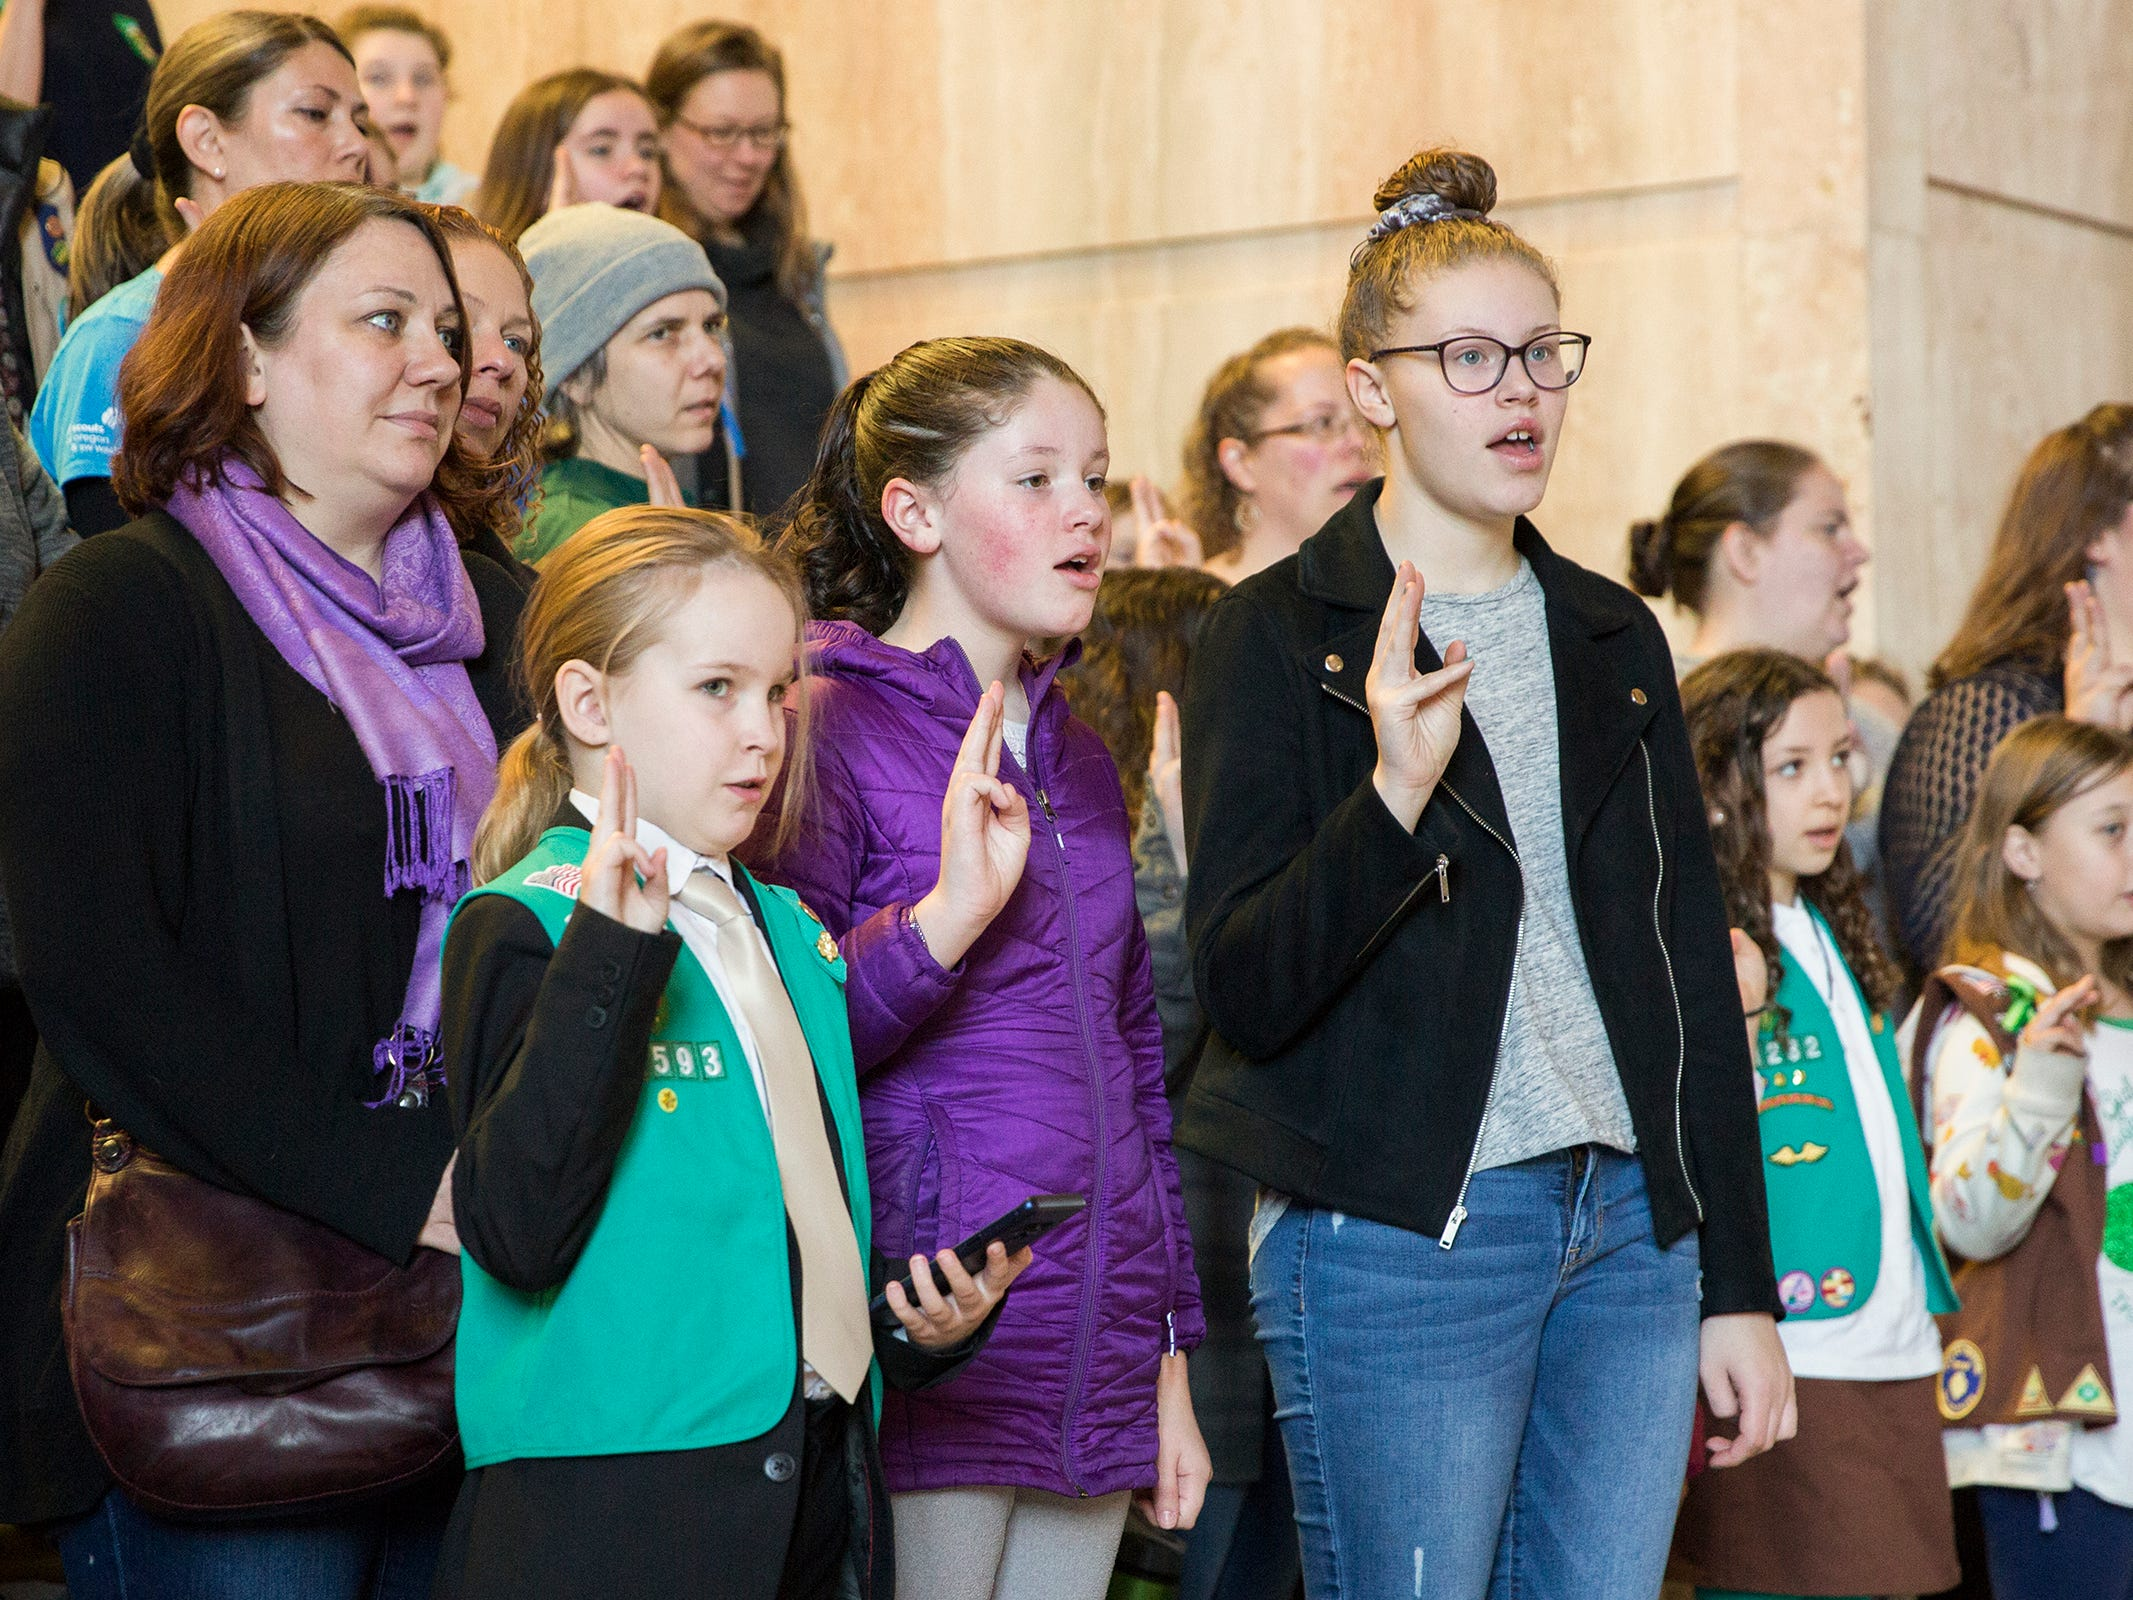 Girl Scouts from across Oregon recite the Girl Scout Promise during Girl Scout Leadership Day at the Oregon State Capitol in Salem March 12, 2019.